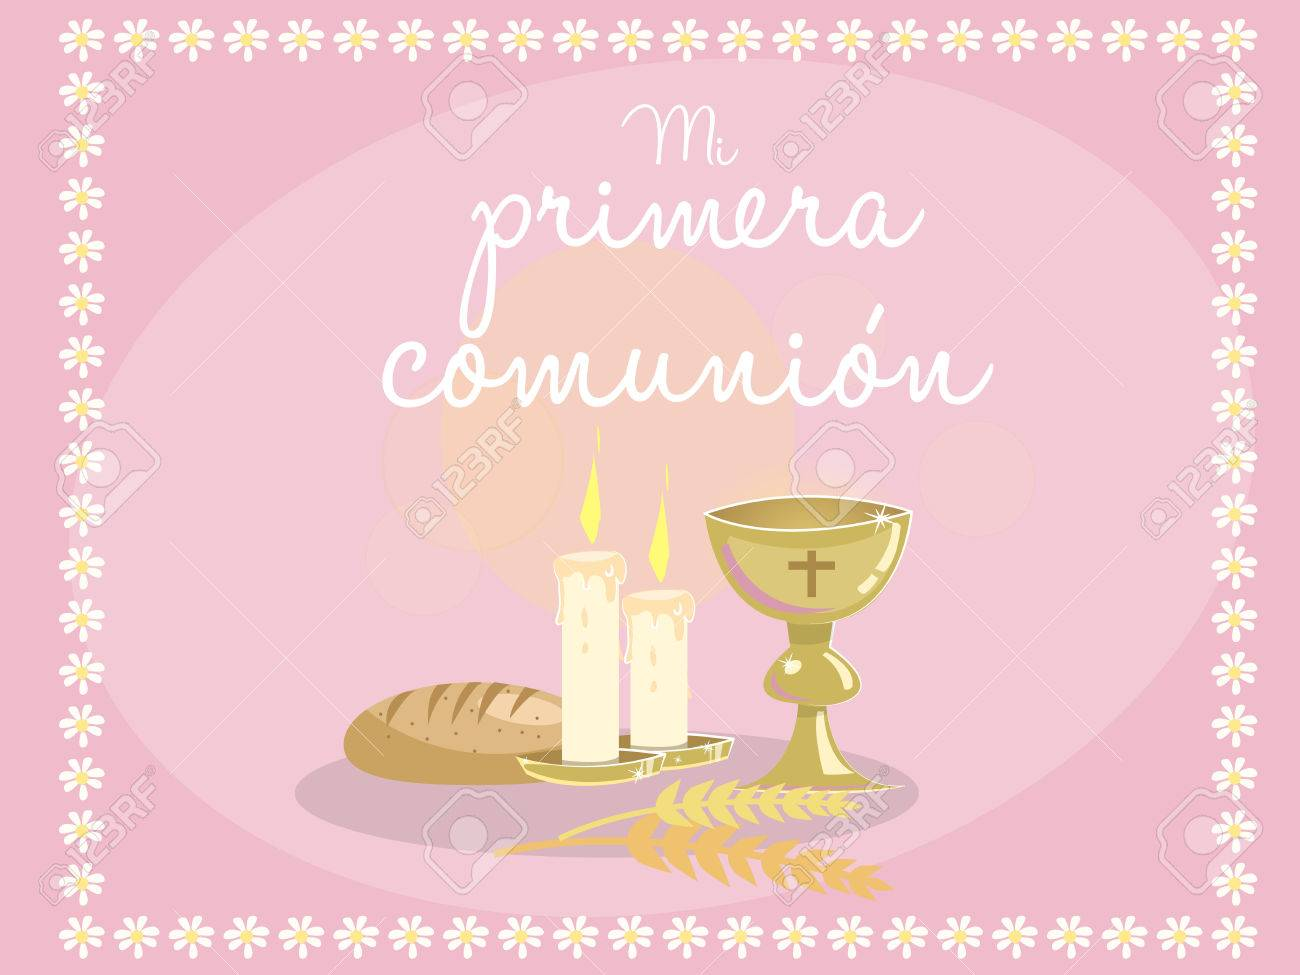 My first communion card invitation religious elements on blue my first communion card invitation religious elements on blue background frame made with kristyandbryce Choice Image